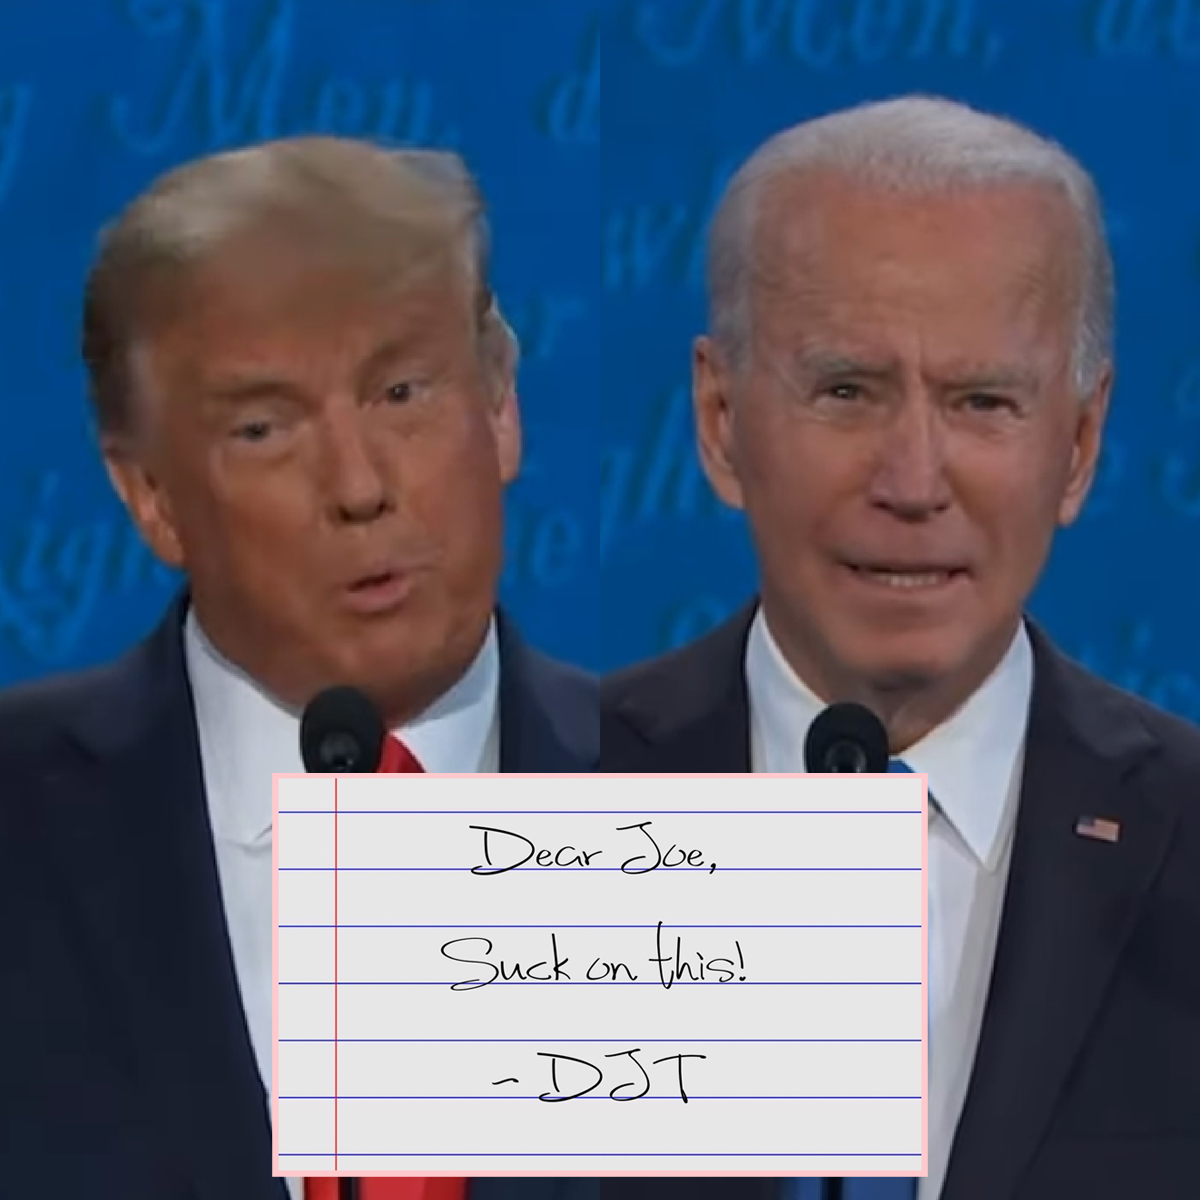 Trump Reportedly Left A Parting Note For Biden And Twitter Has A Field Day Meme Ing It Perez Hilton